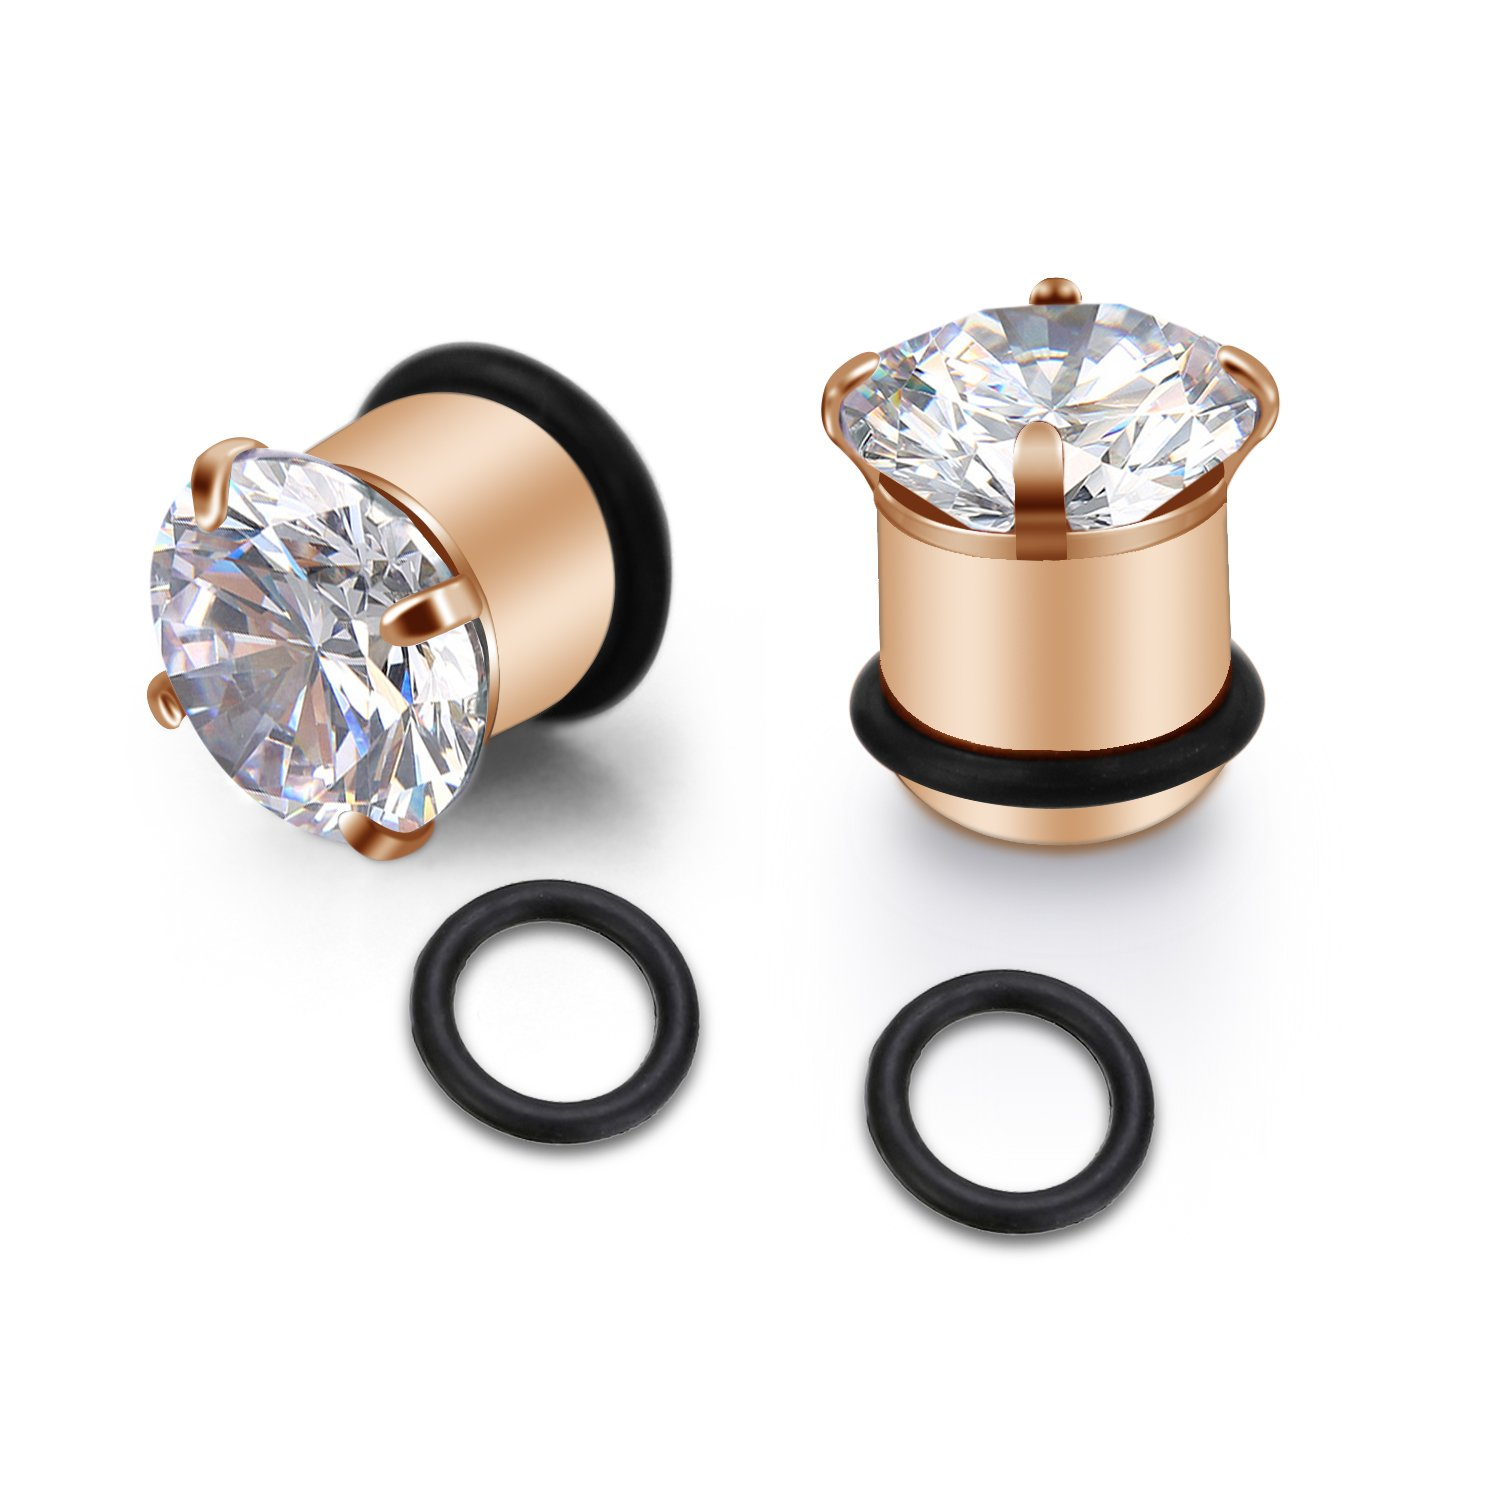 Fectas Ear Gauge Stretching Tunnels Expander Stretcher Plugs with O-Ring Piercing Jewelry Rose Gold 8G-1/2 UK_B07CJNC6BF